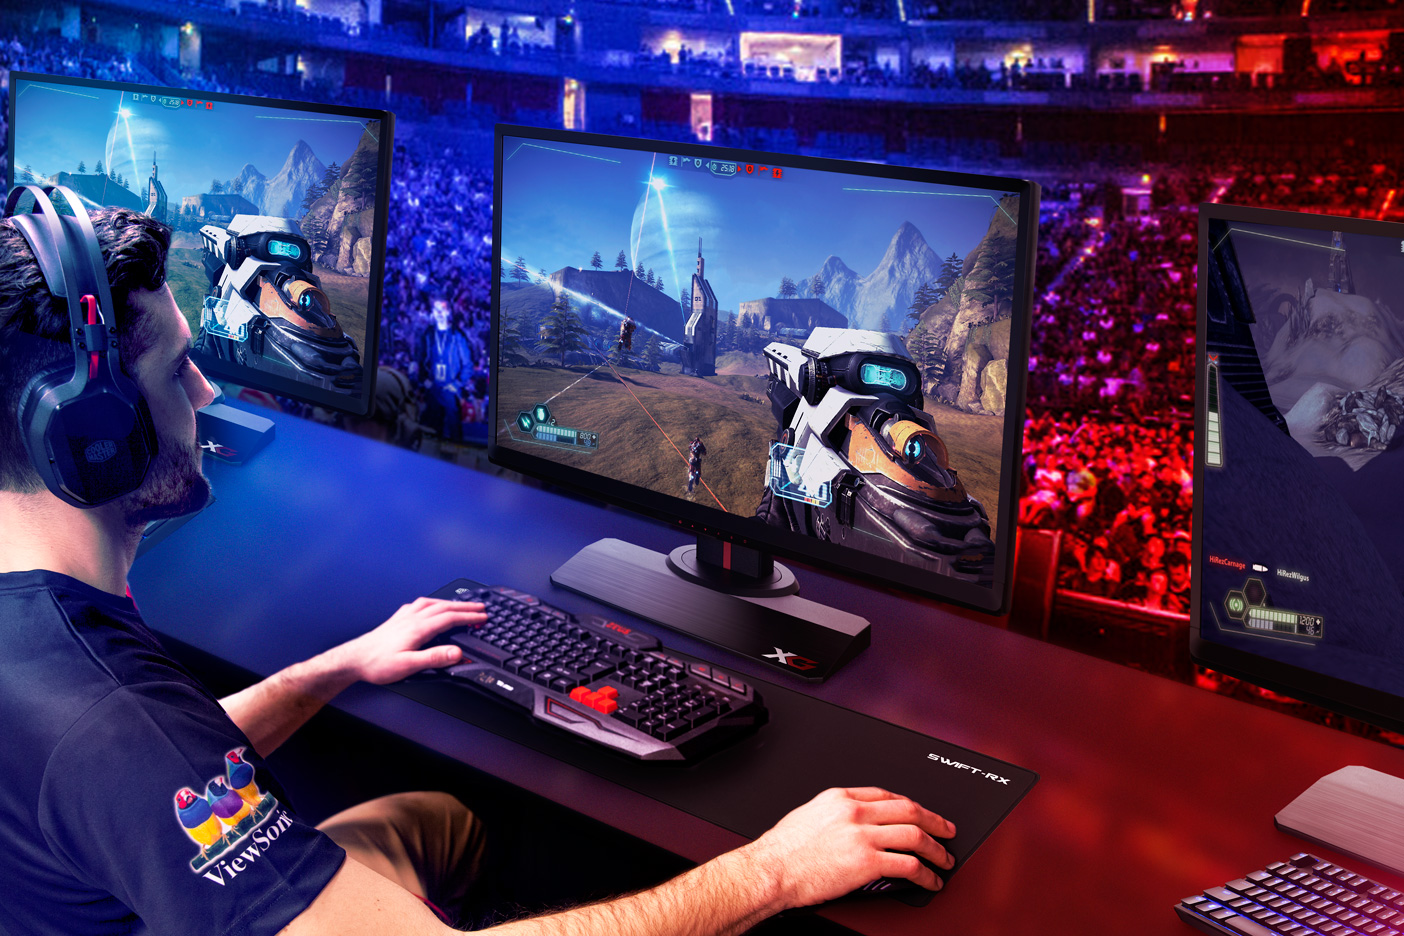 ViewSonic Introduces New XG Gaming Monitor with 240Hz Refresh Rate